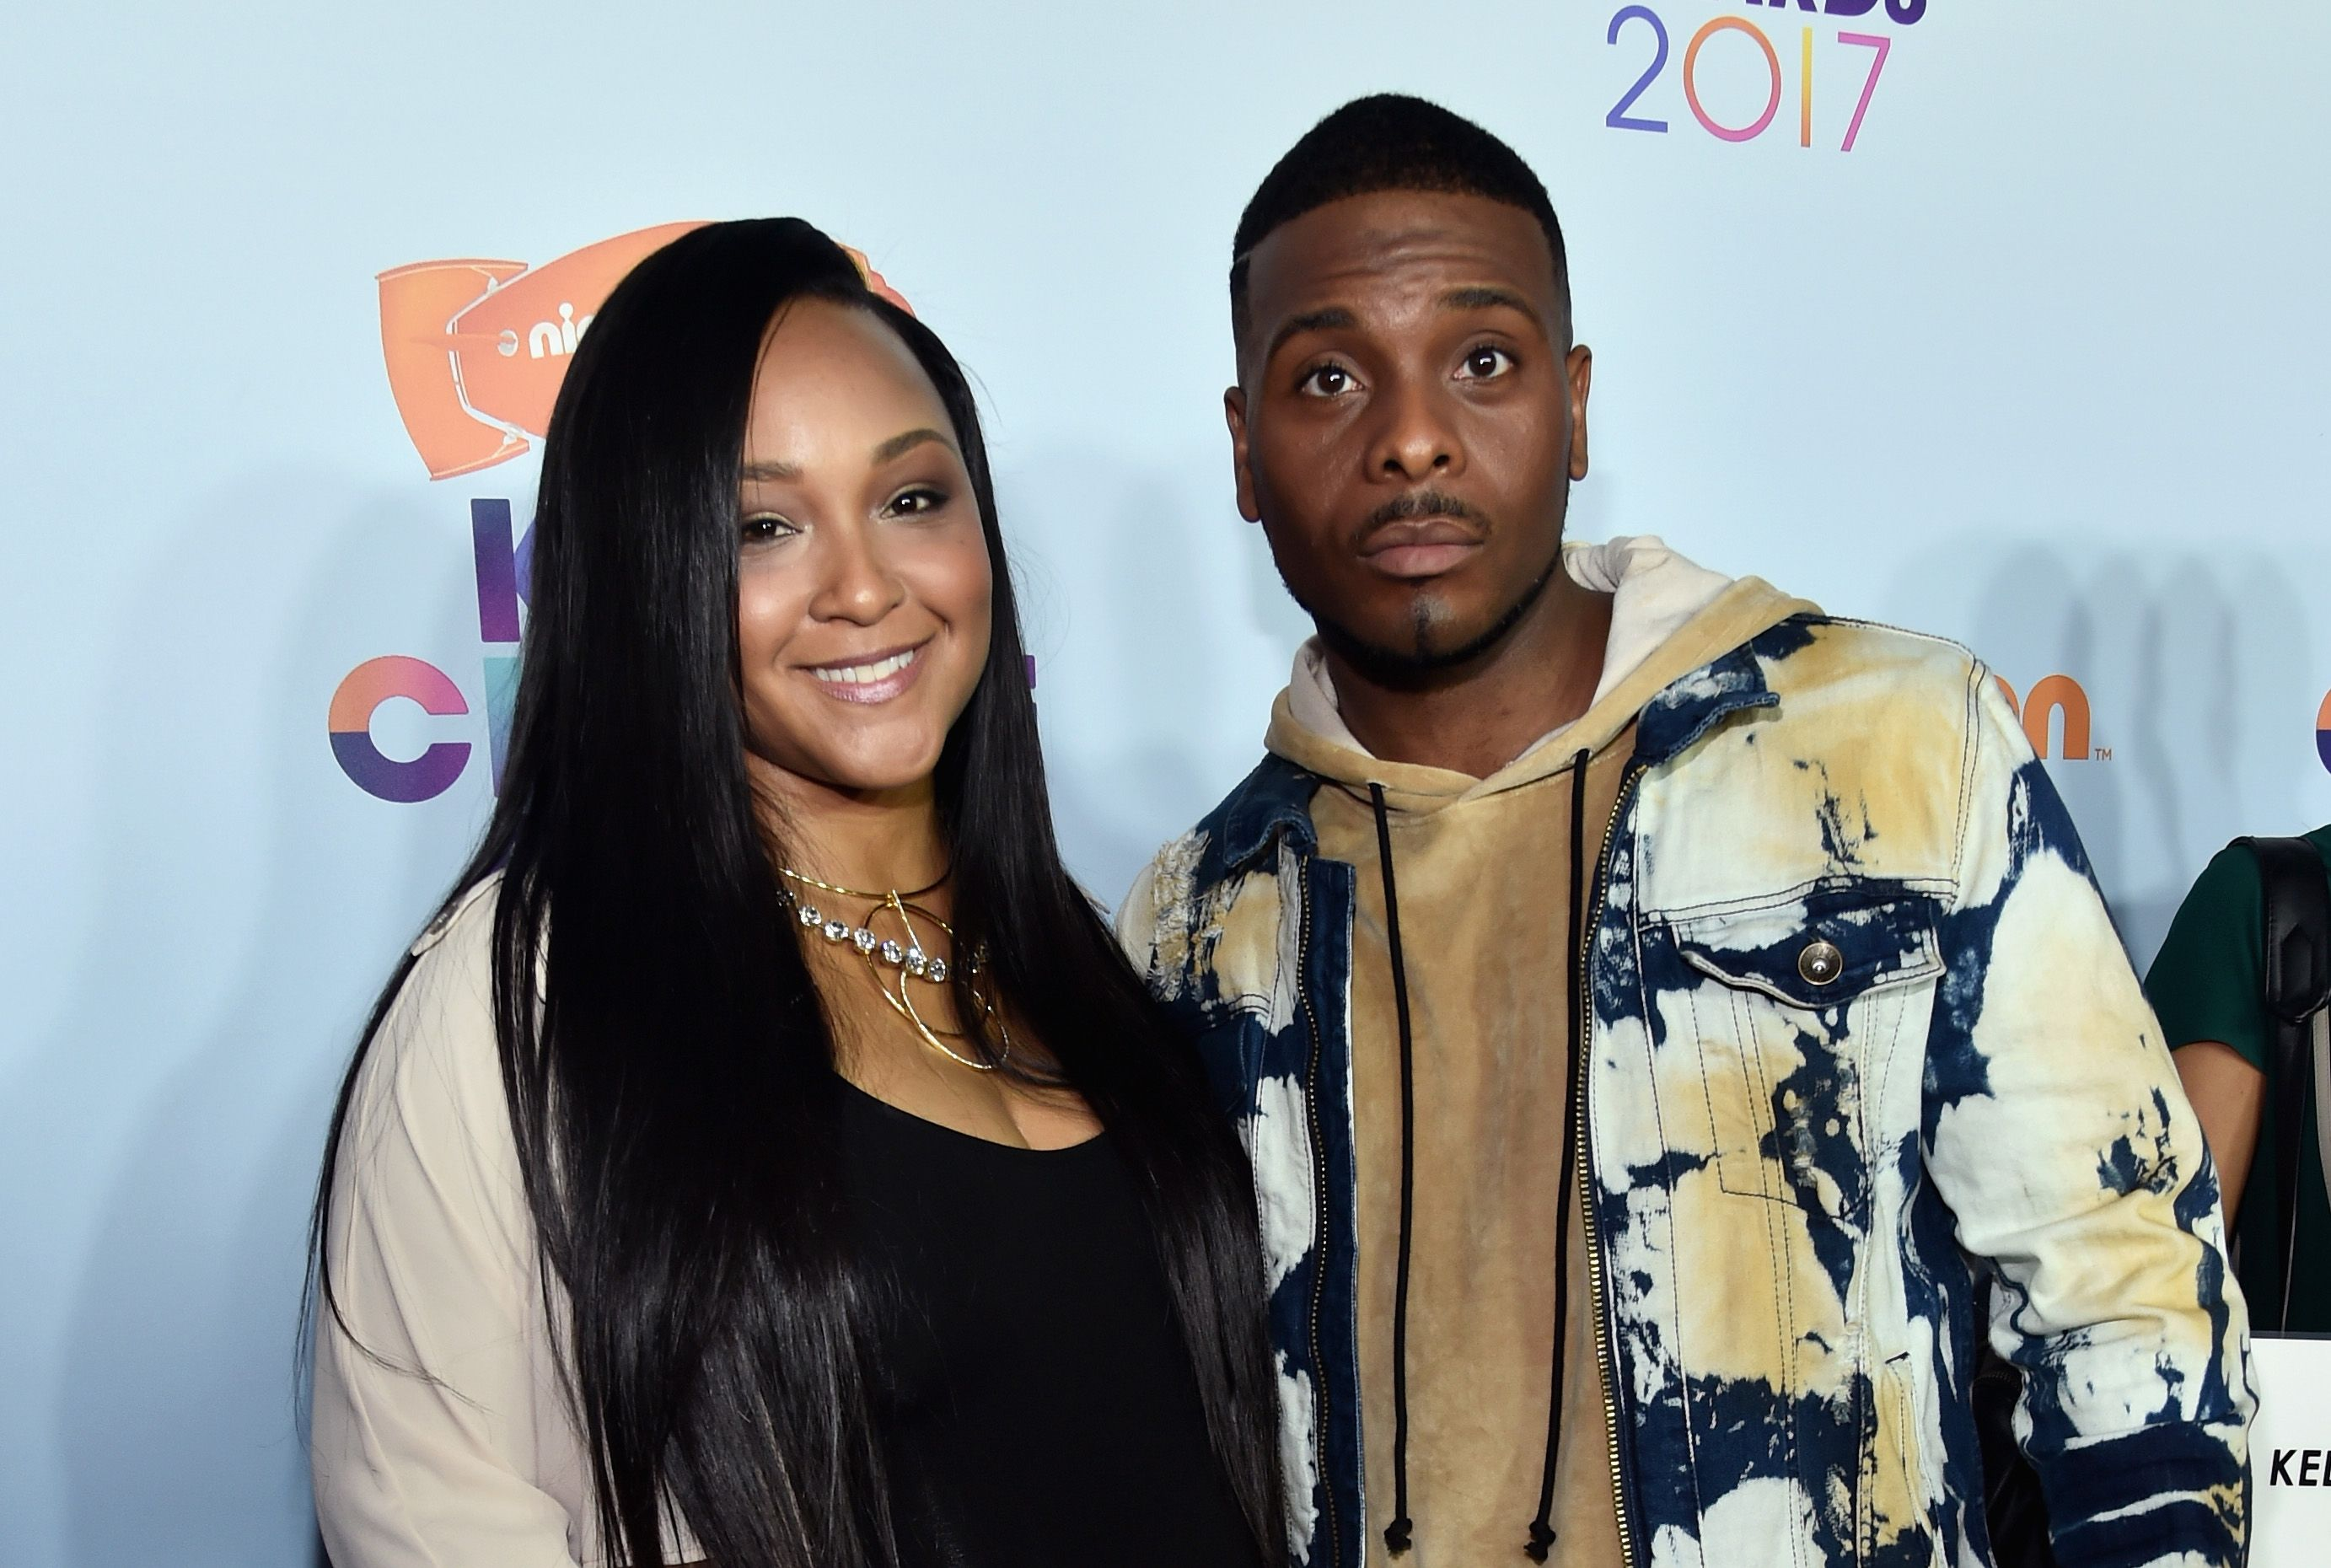 Asia Lee and Kel Mitchell at Nickelodeon's 2017 Kids' Choice Awards at USC Galen Center on March 11, 2017.   Source: Getty Images